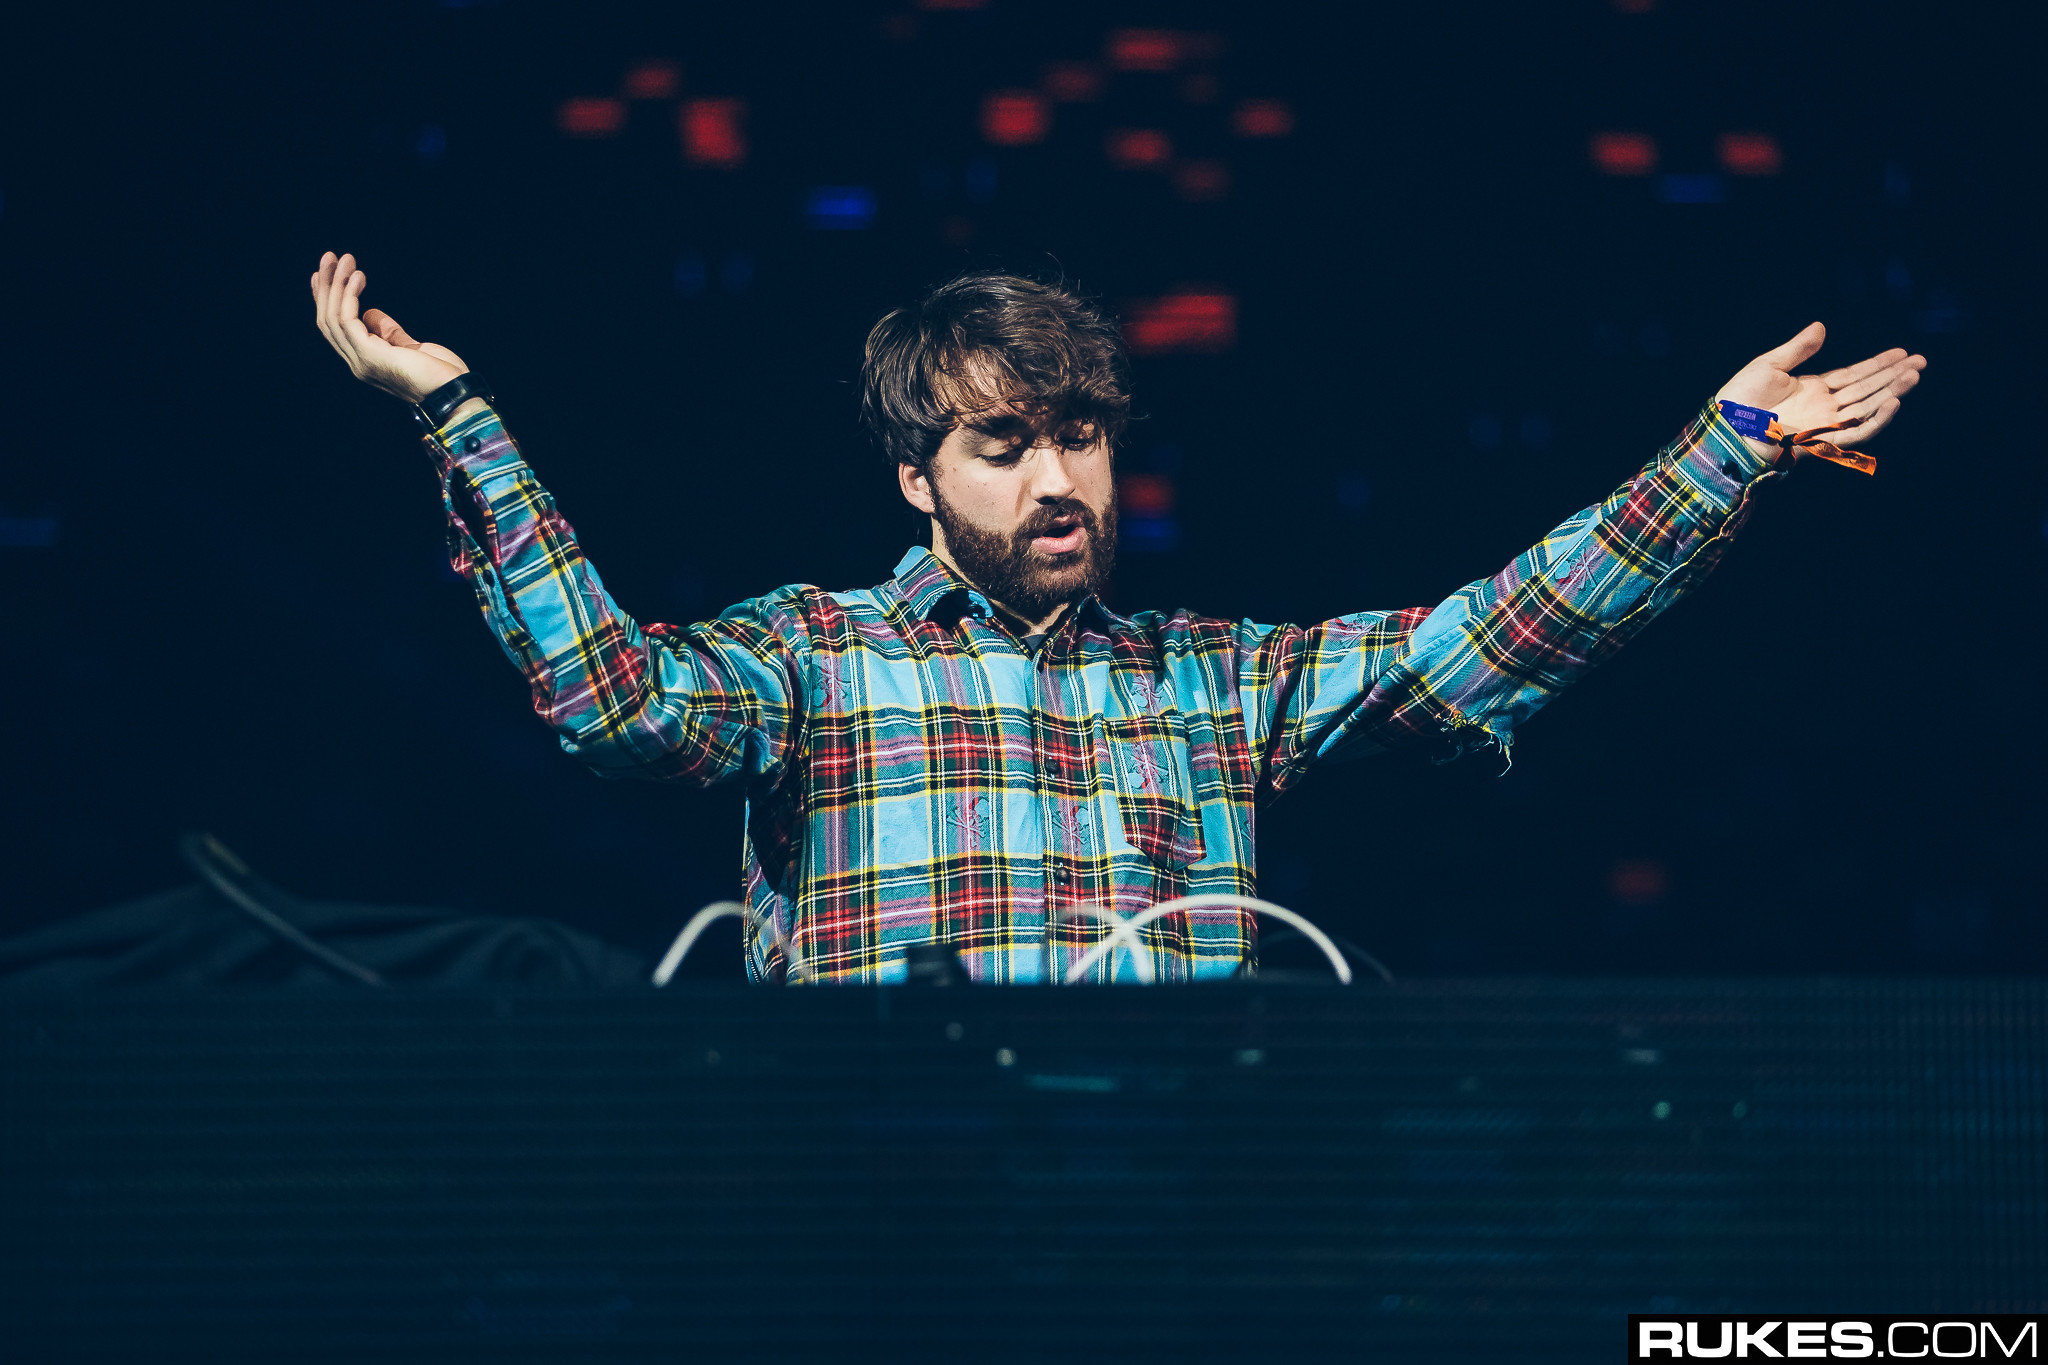 oliver-heldens-with-arms-wide-open-decadence-nye-2017-rukes-2089739-4506236-jpg